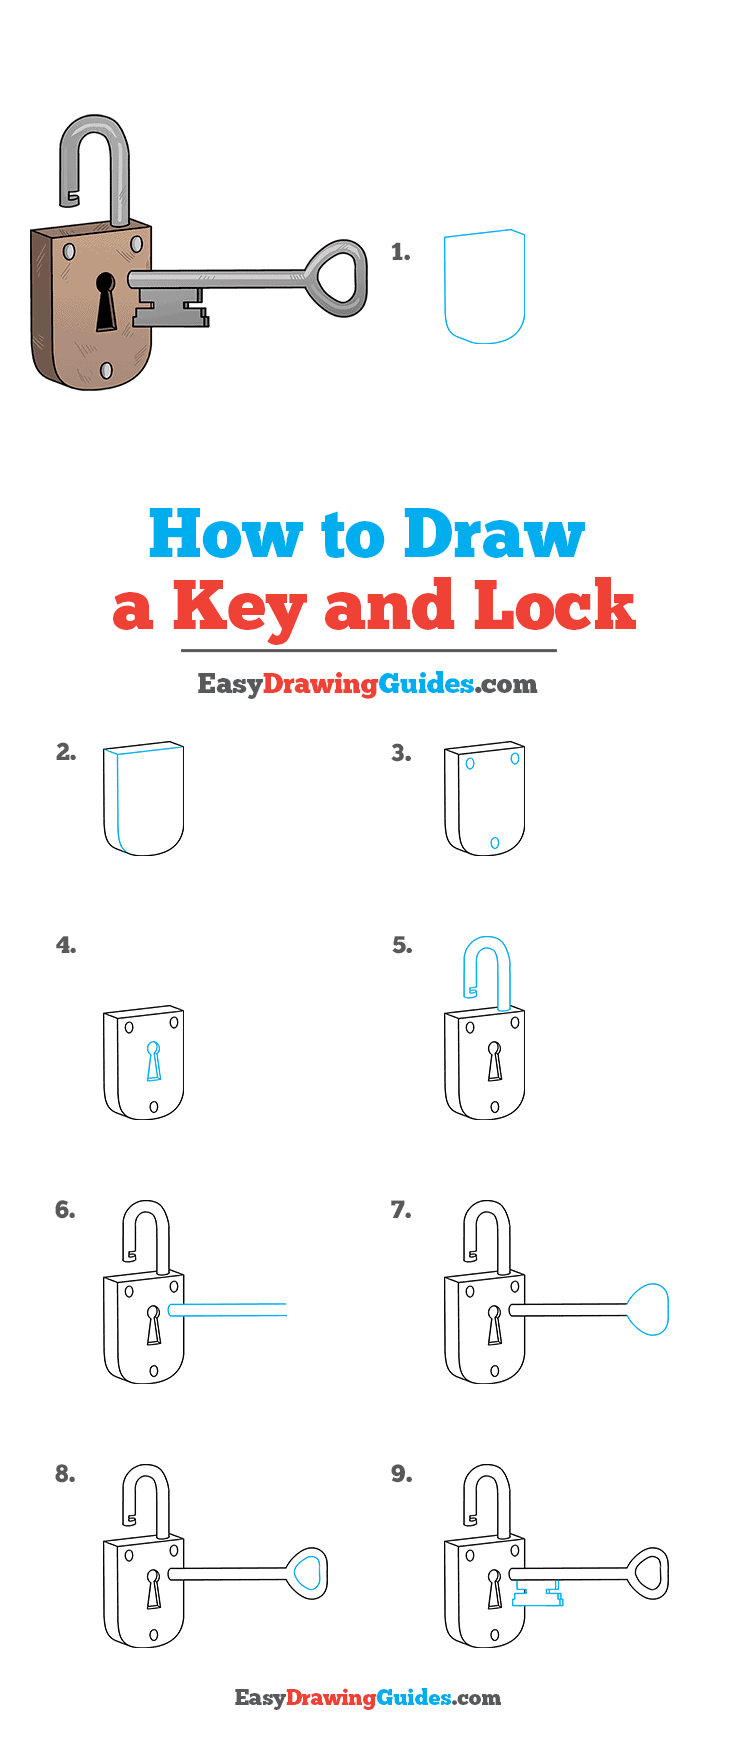 How to Draw Key and Lock